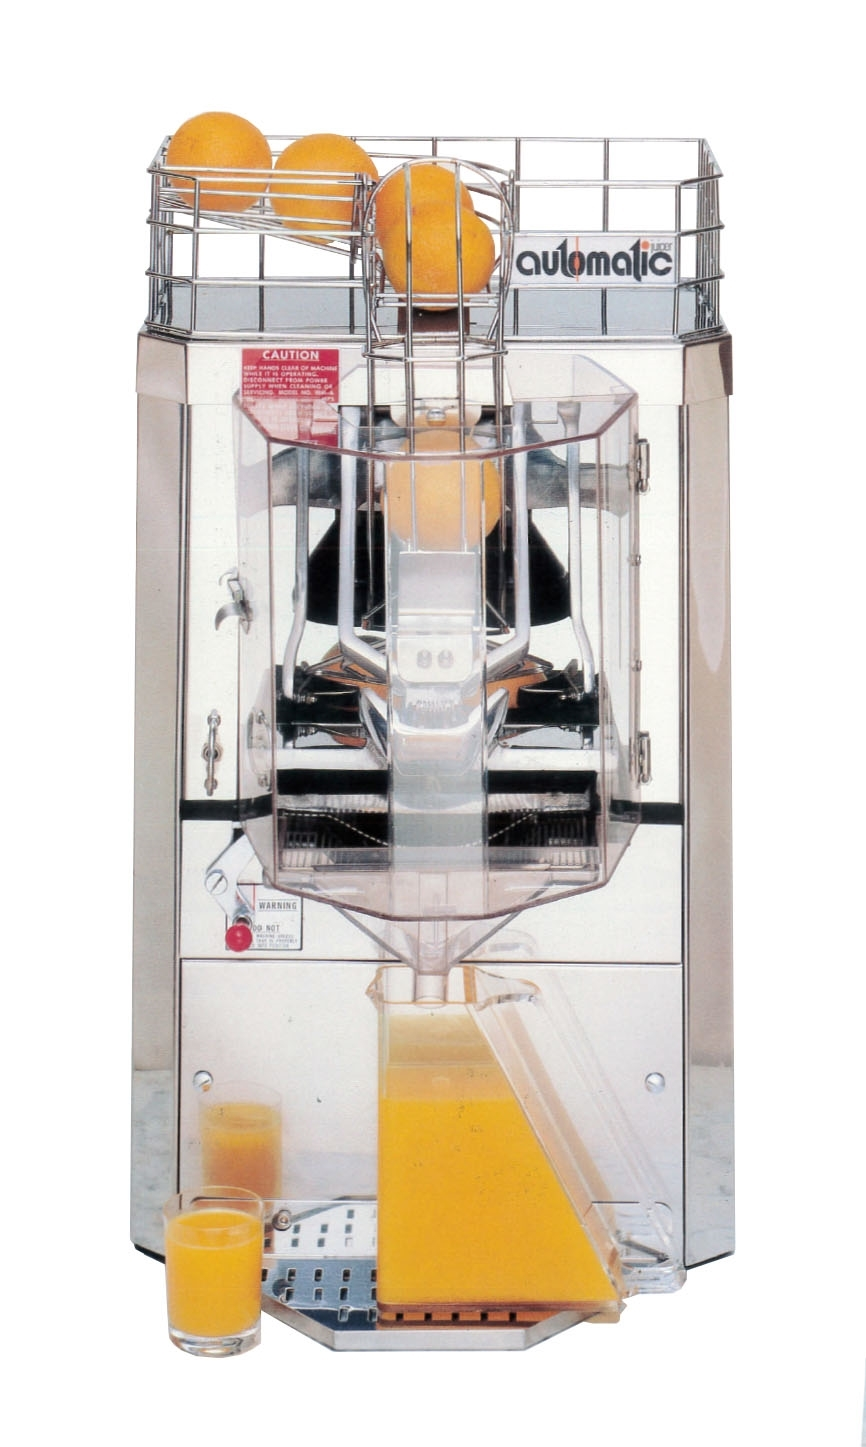 Automatic Juicer ® S16